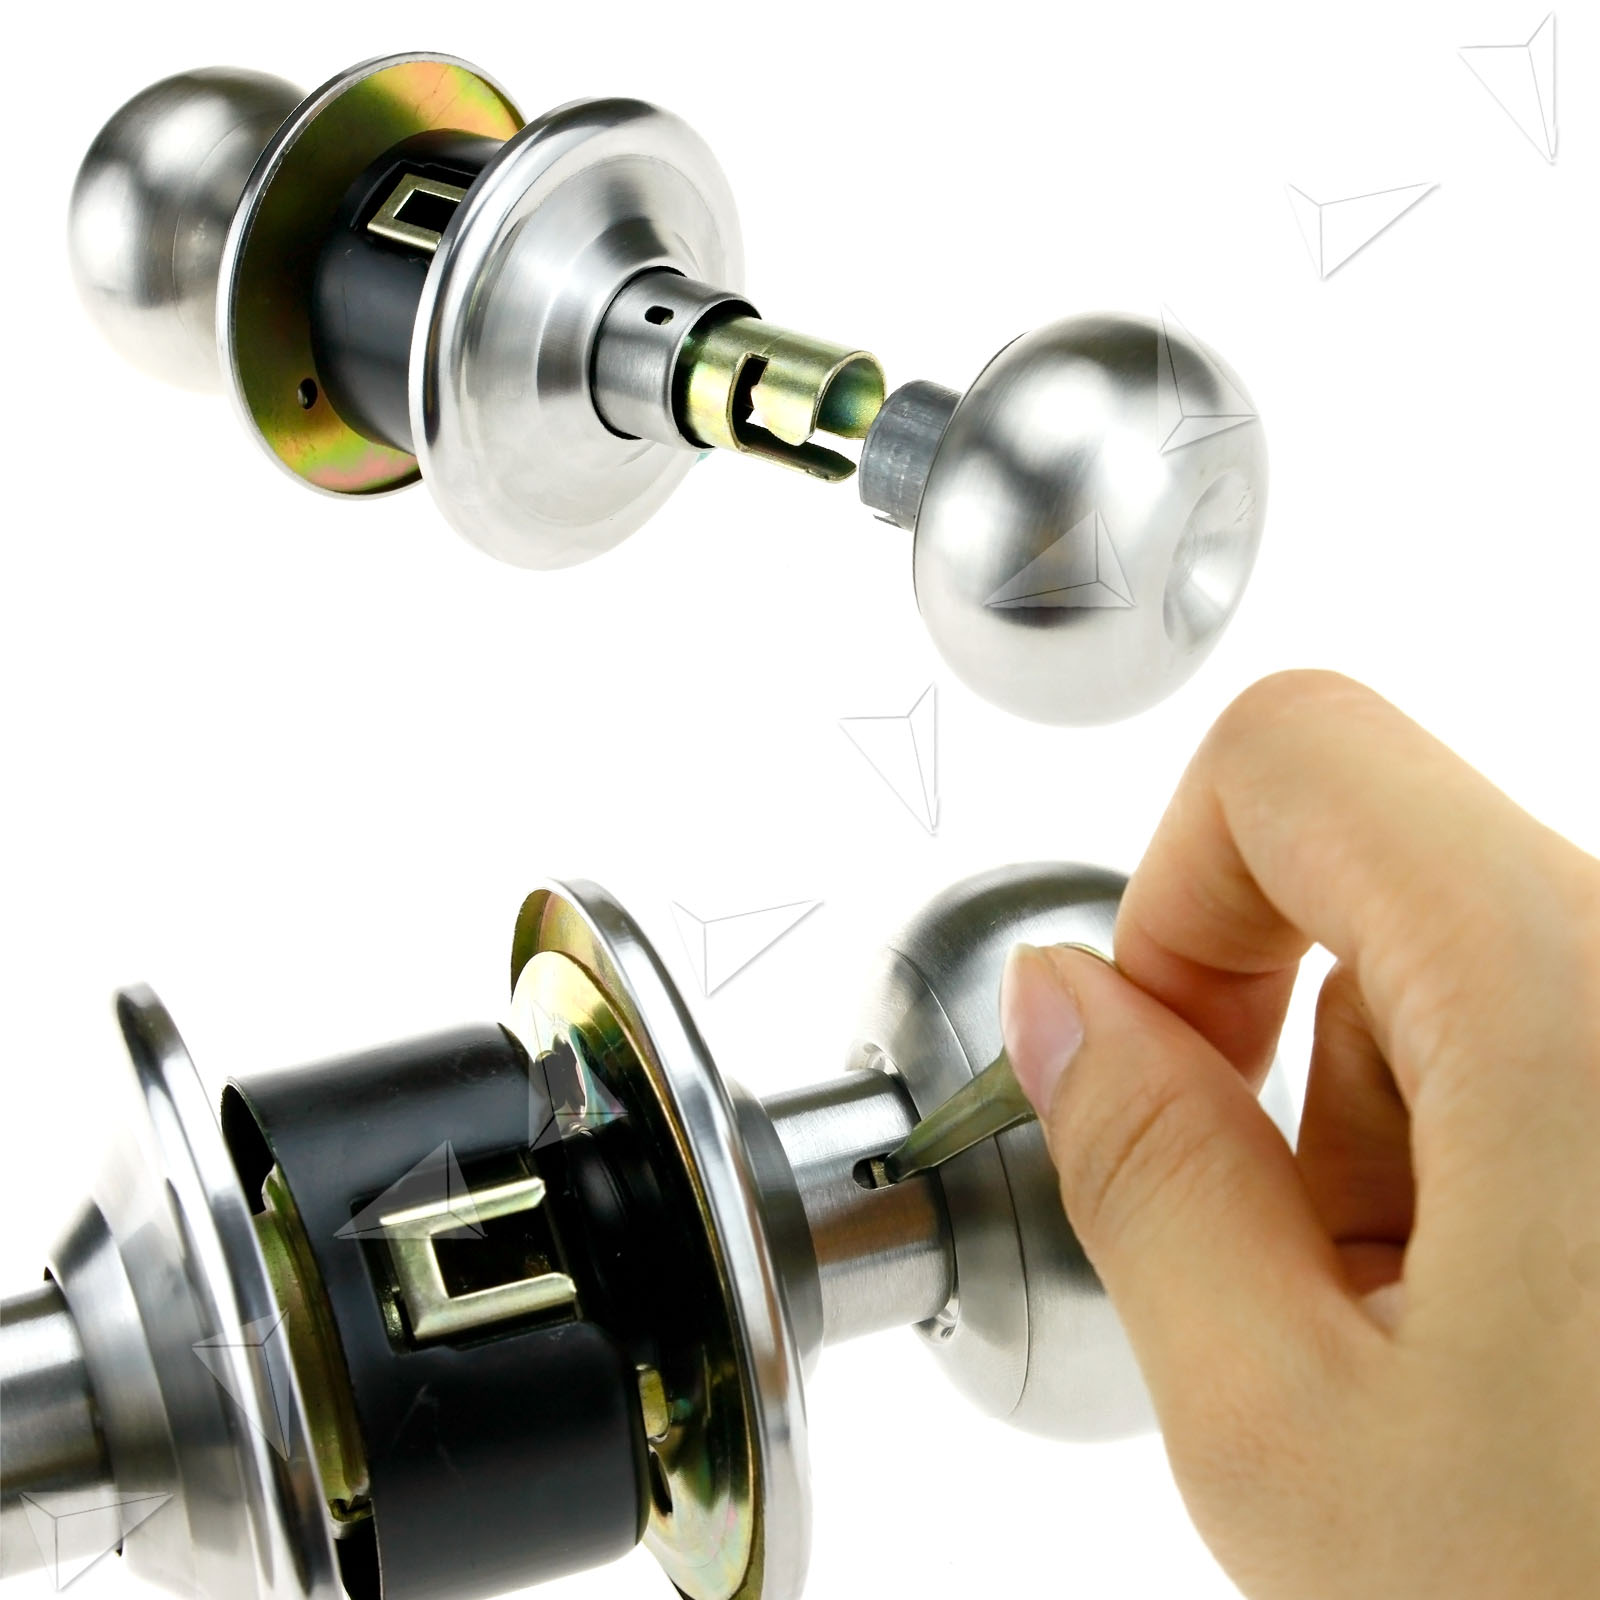 Passage brushed satin nickel round handle knobs door locks - Bedroom door knobs with key lock ...